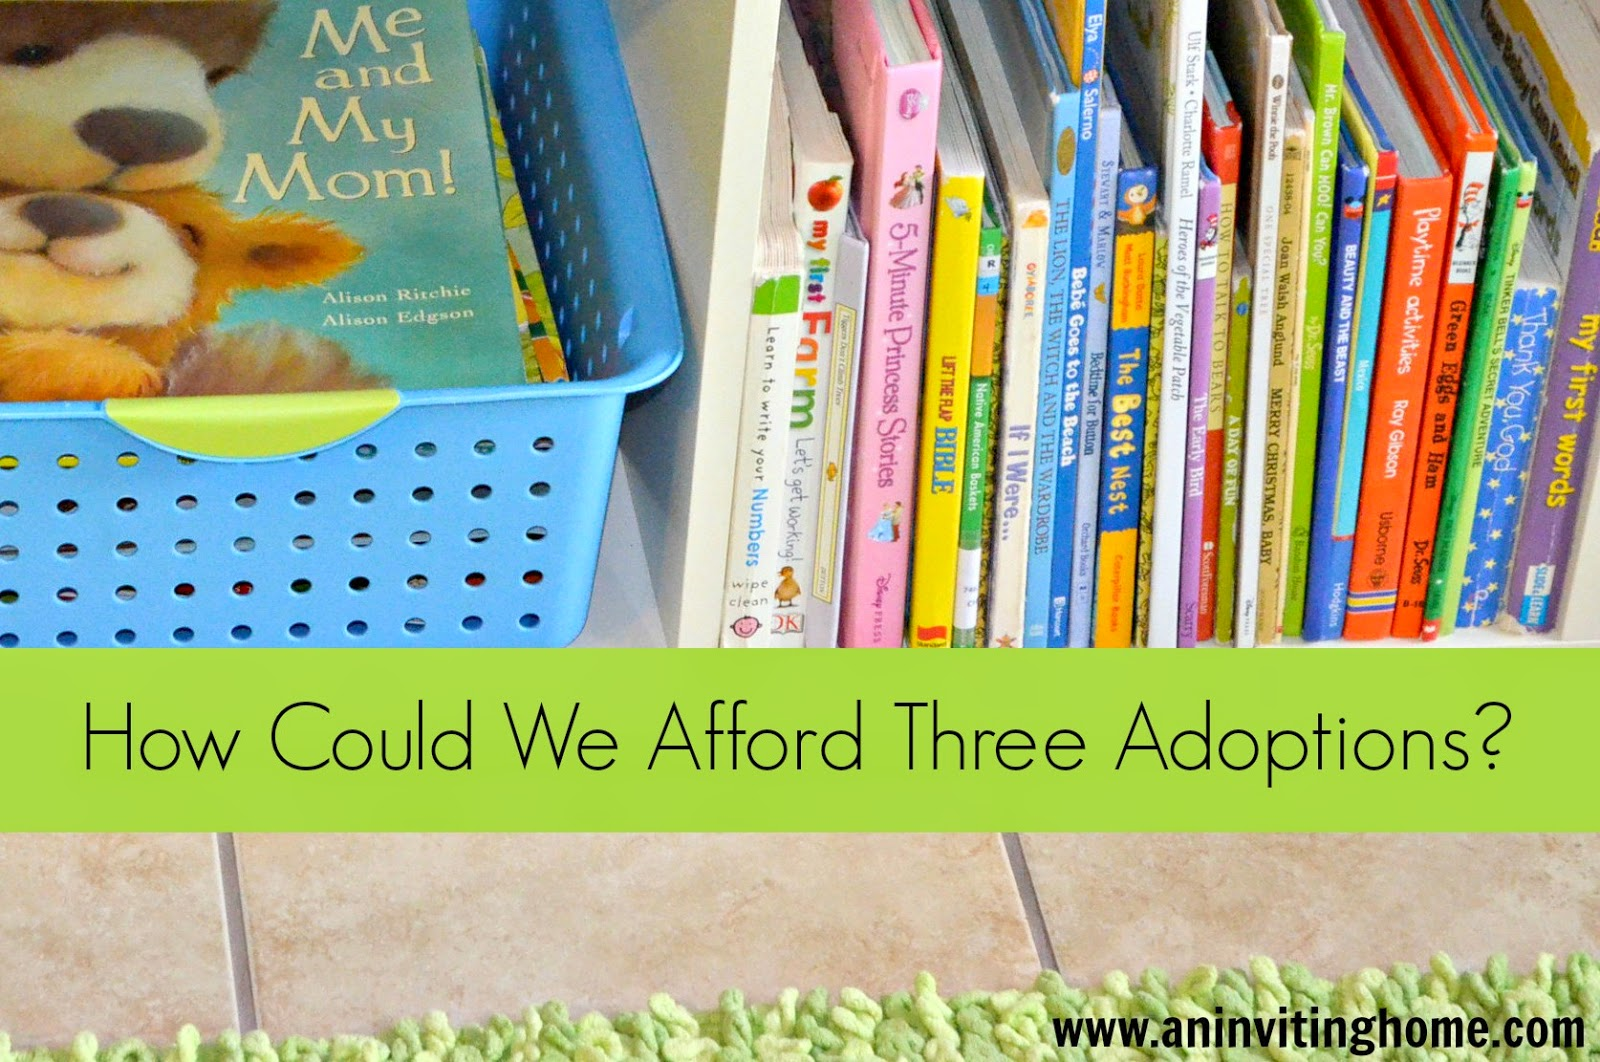 How could we afford three adoptions